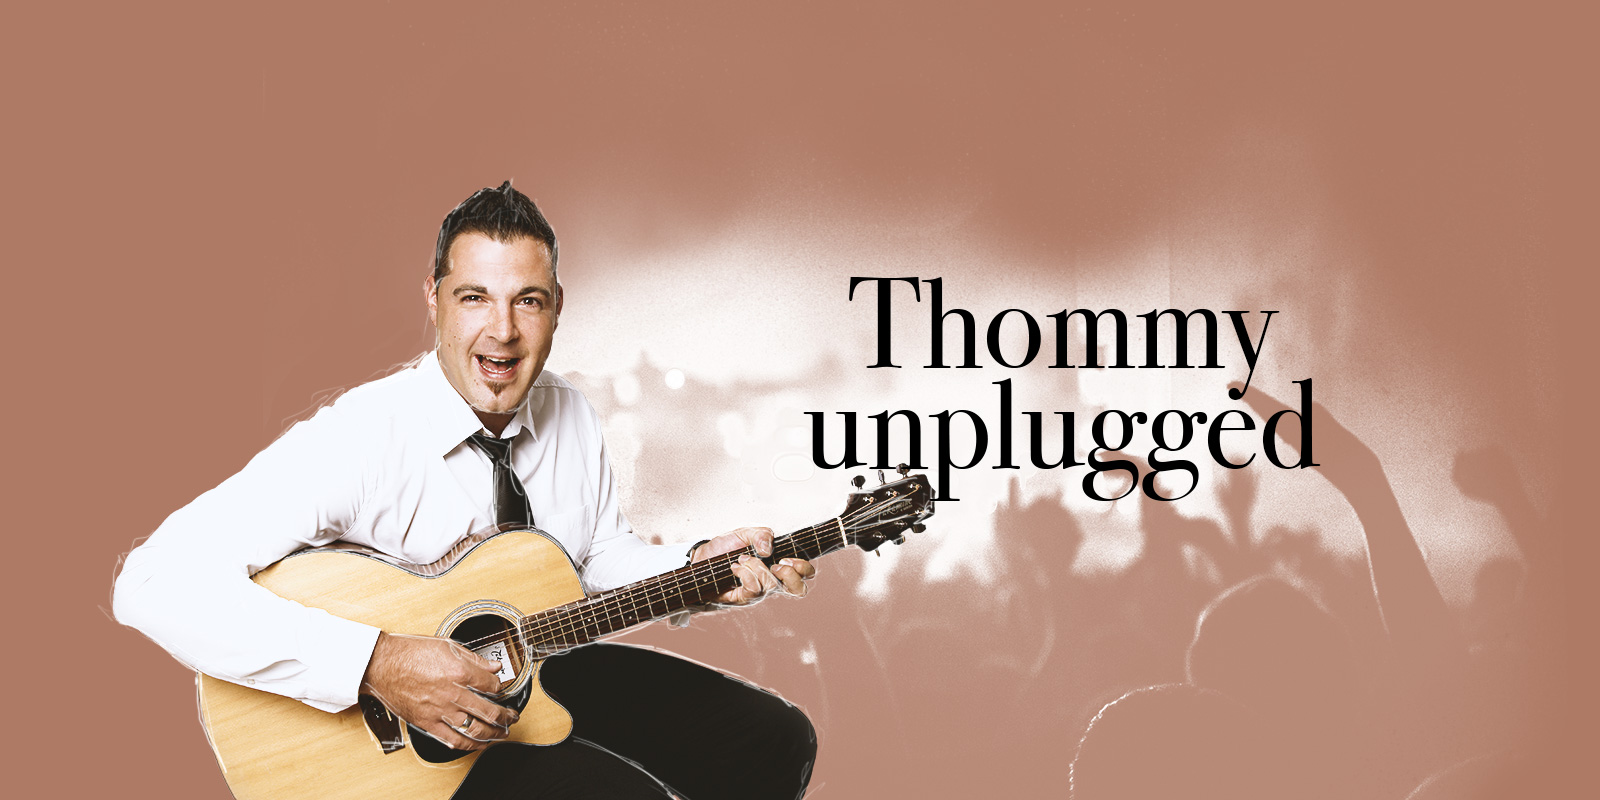 Thommy unplugged